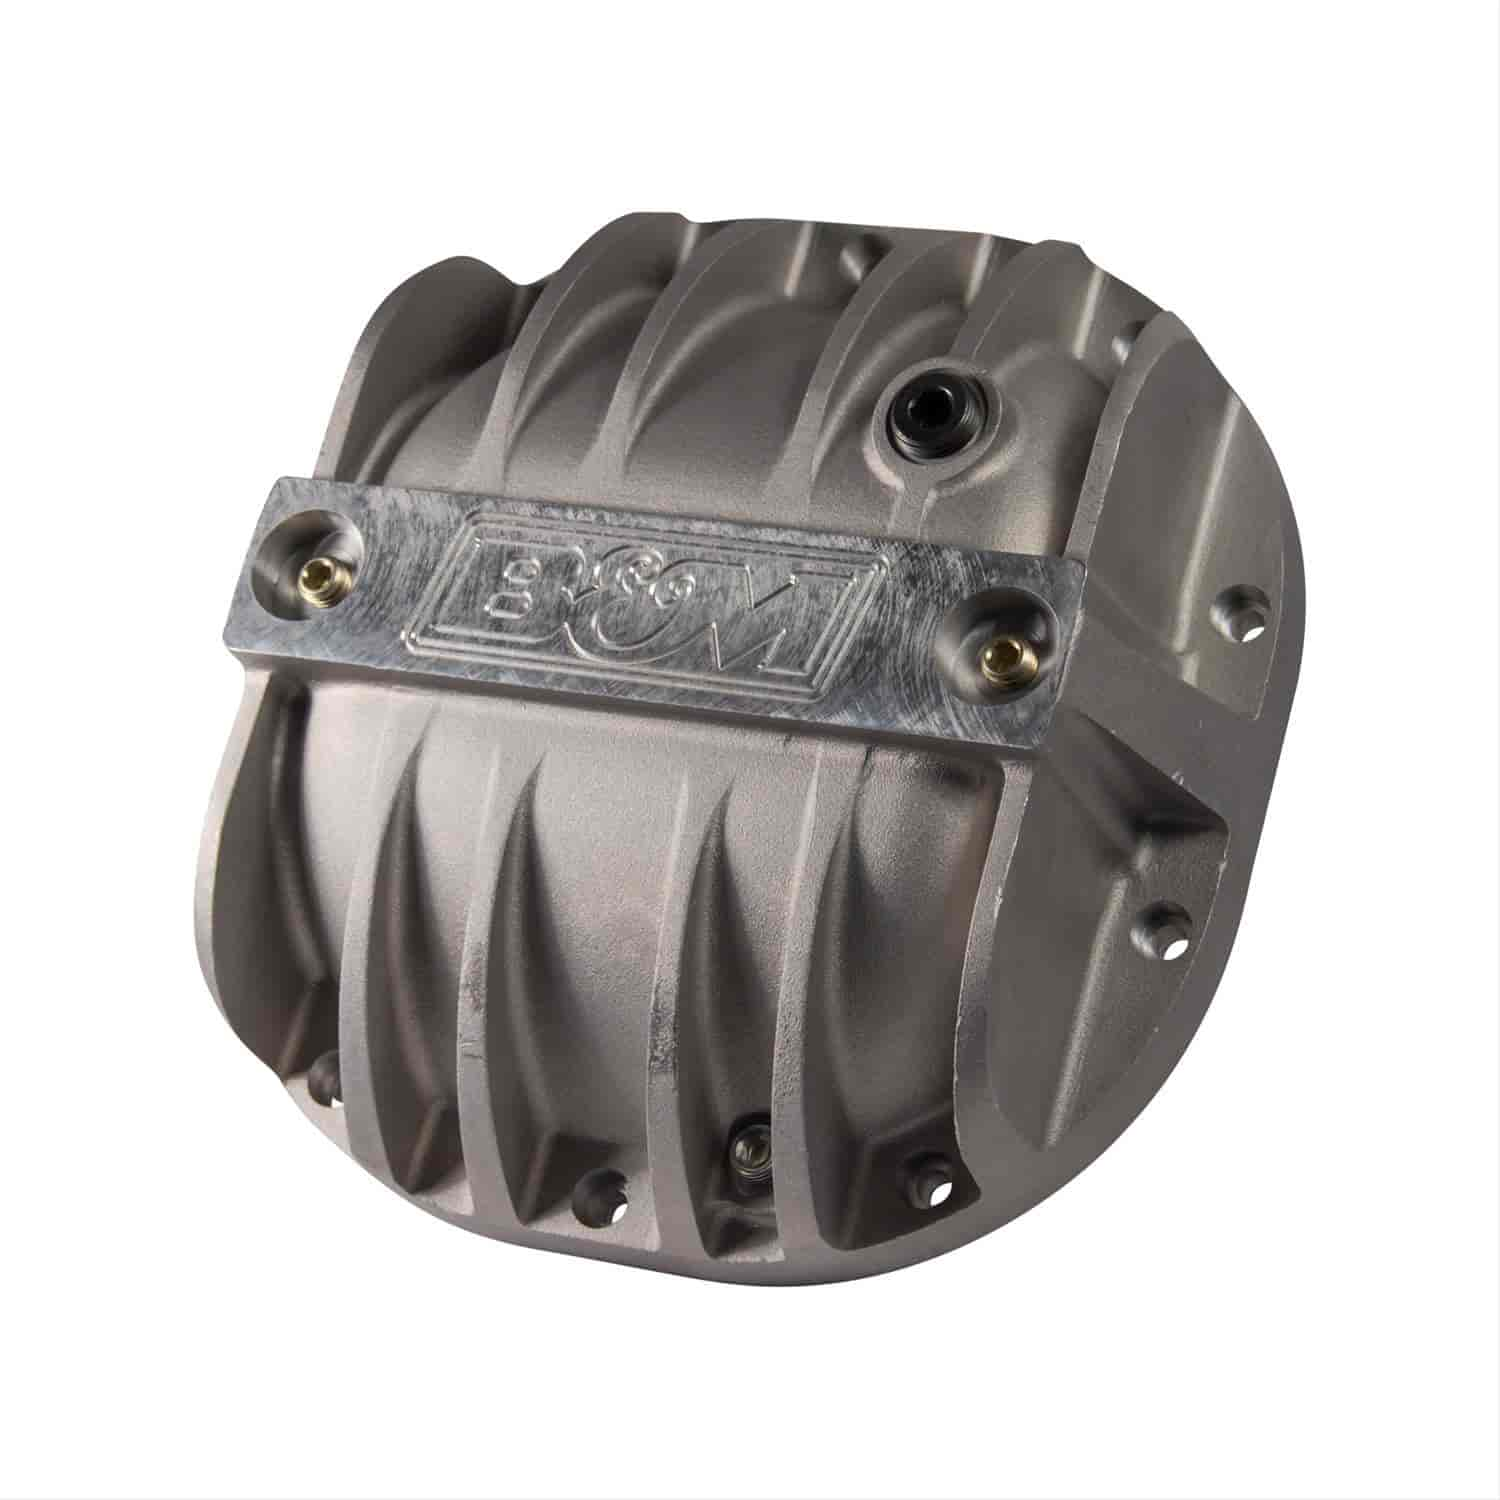 B/&M 10315 Cast Aluminum Rear End Differential Cover for Dana 80